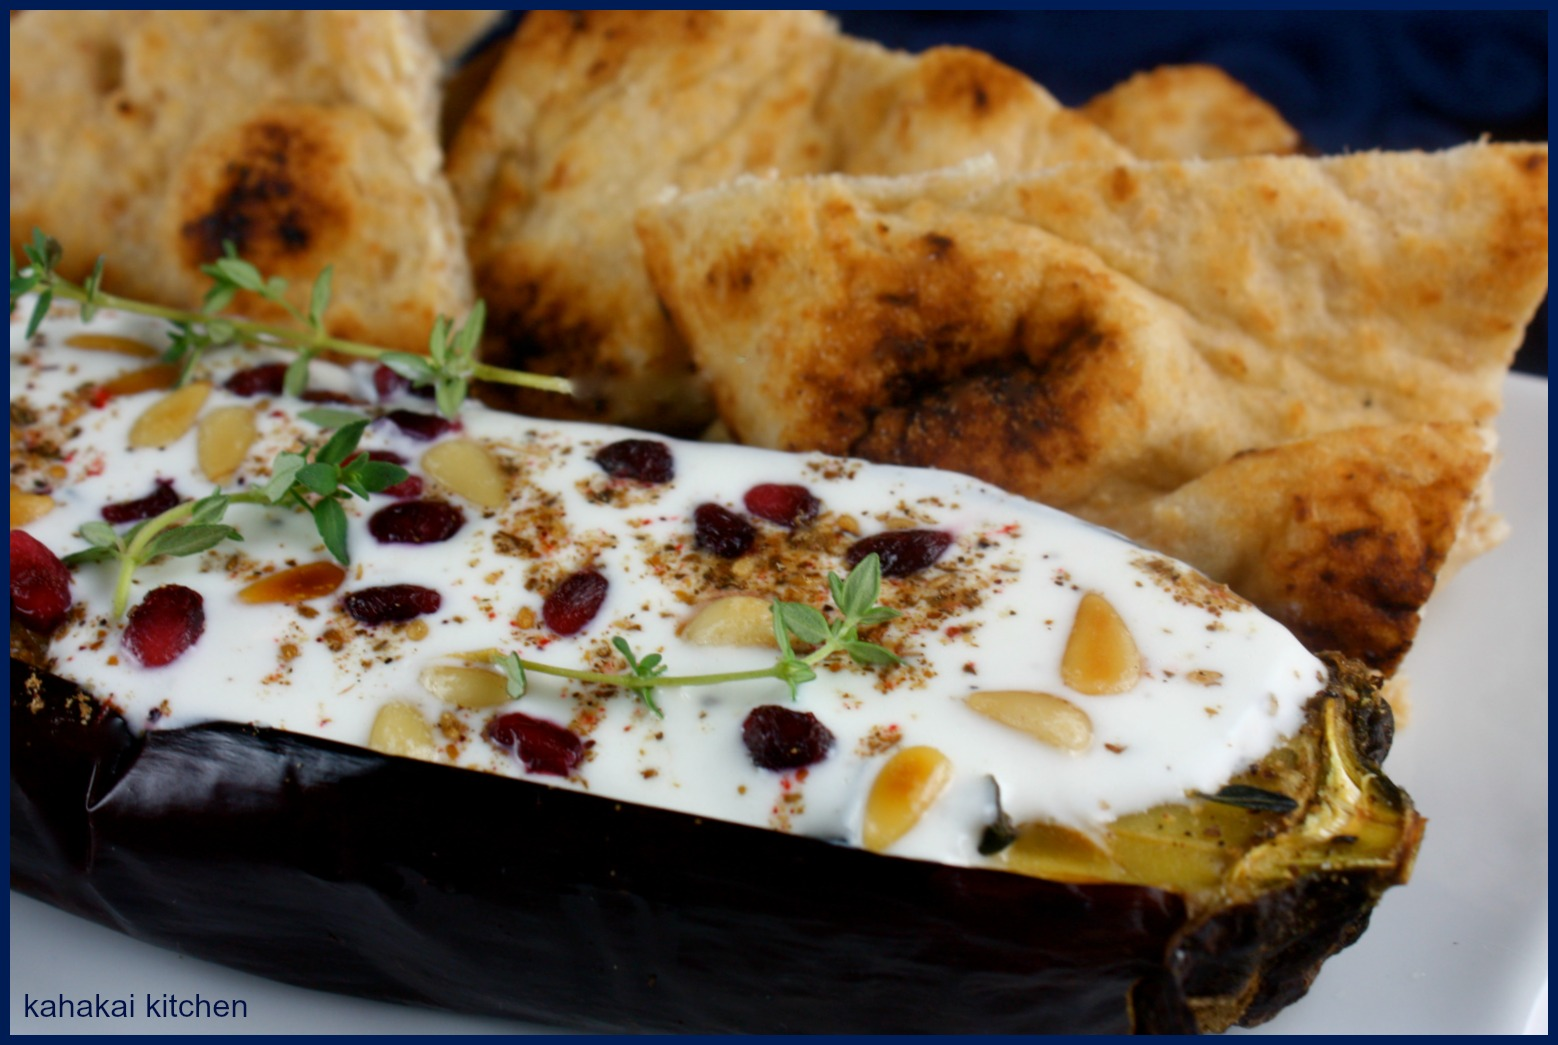 Kahakai Kitchen: Ottolenghi's Eggplant with Buttermilk-Yogurt Sauce ...